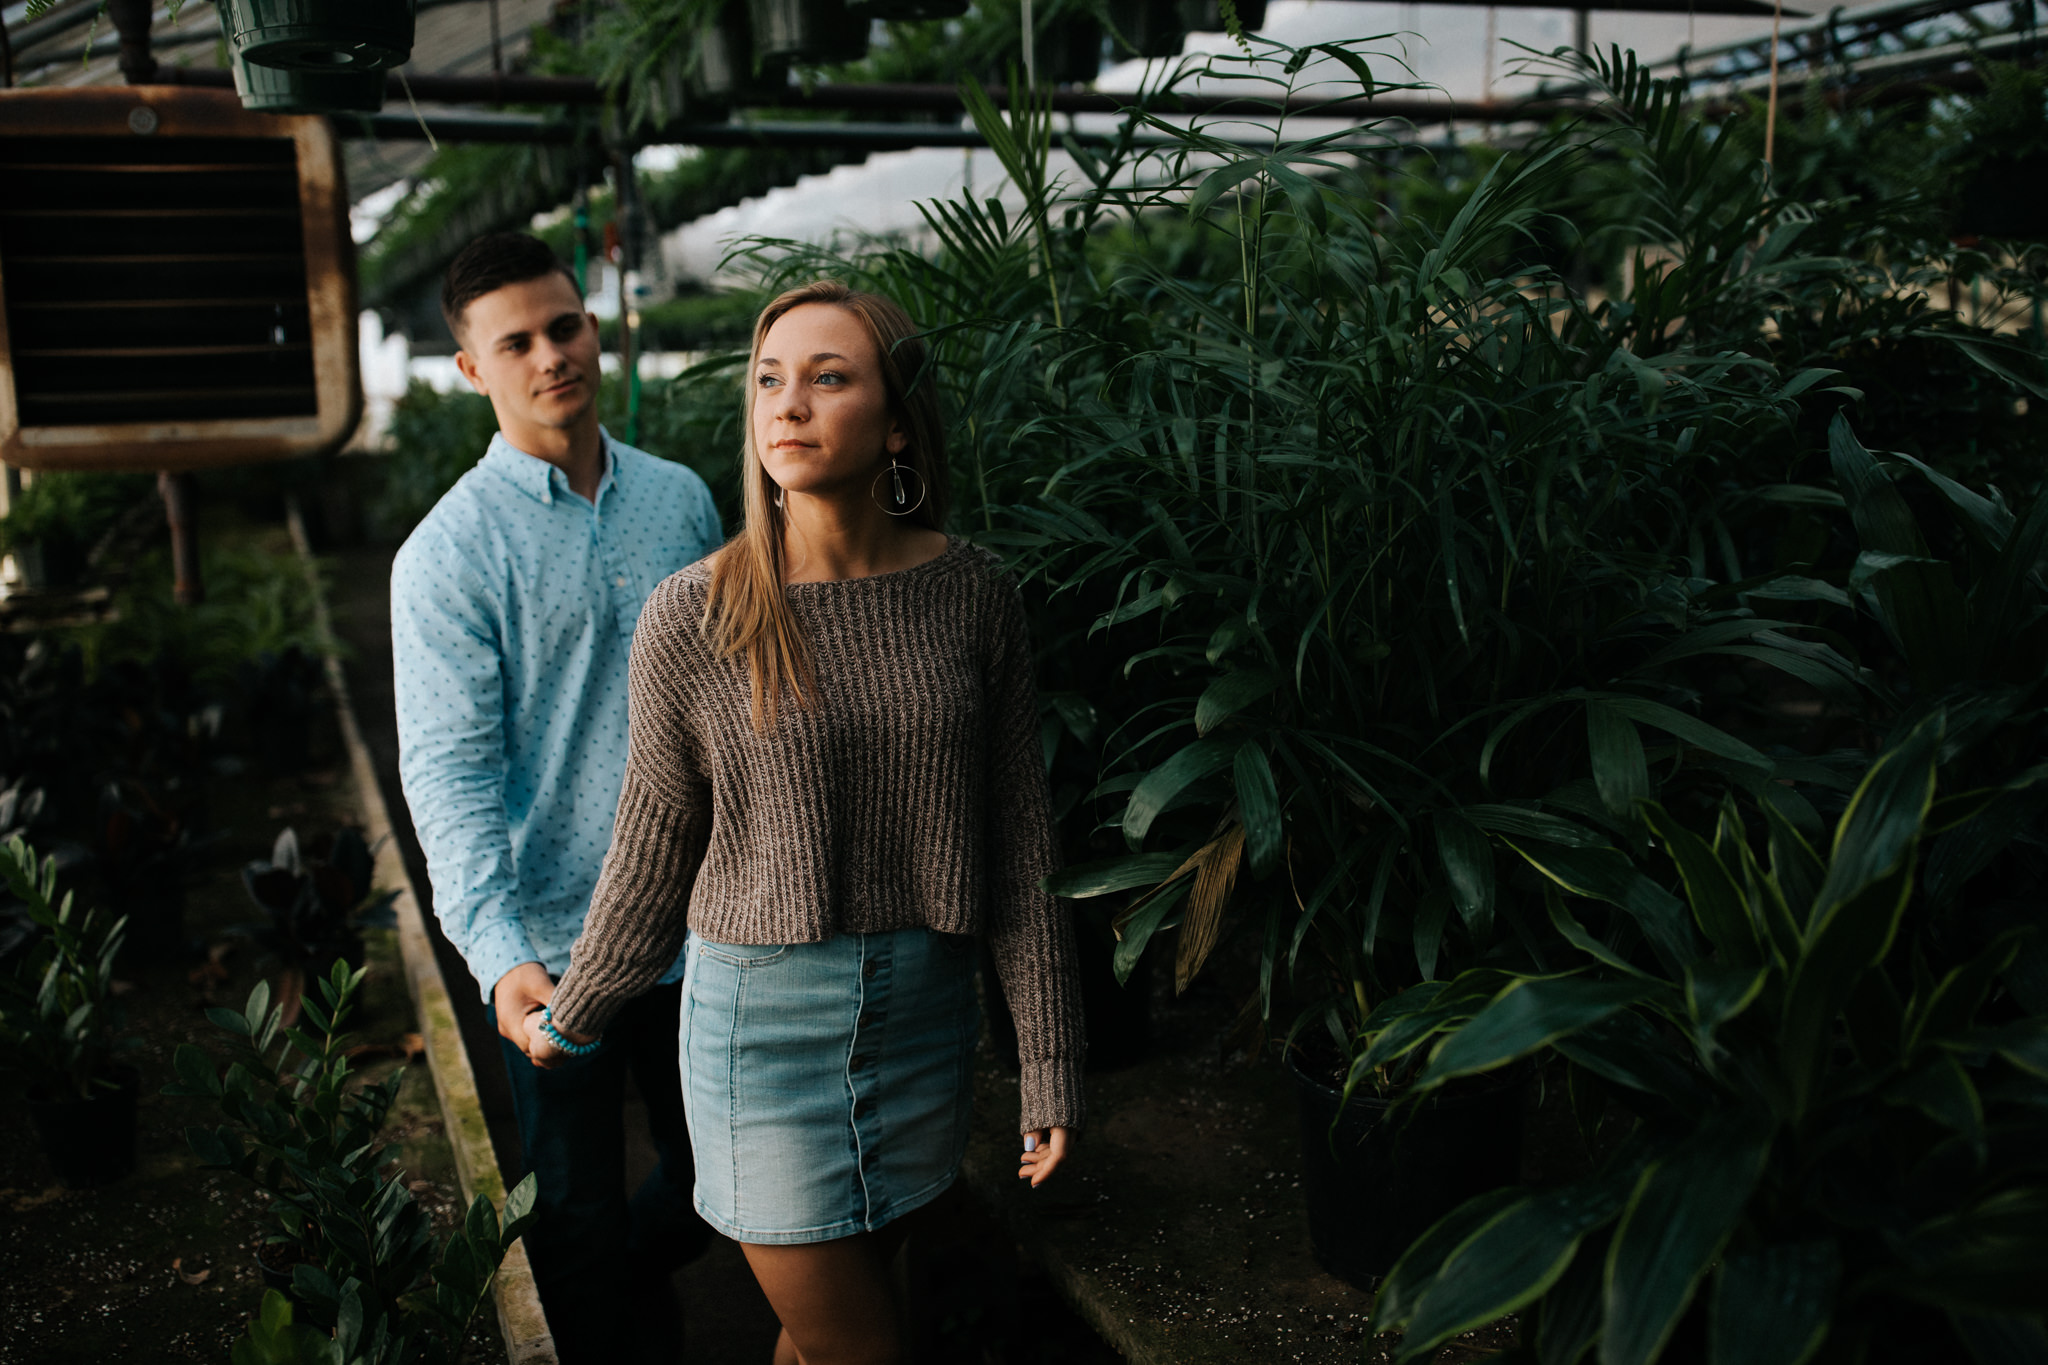 memphis-engagement-photographer-thewarmtharoundyou-greenhouse-engagement-pictures (6 of 118).jpg